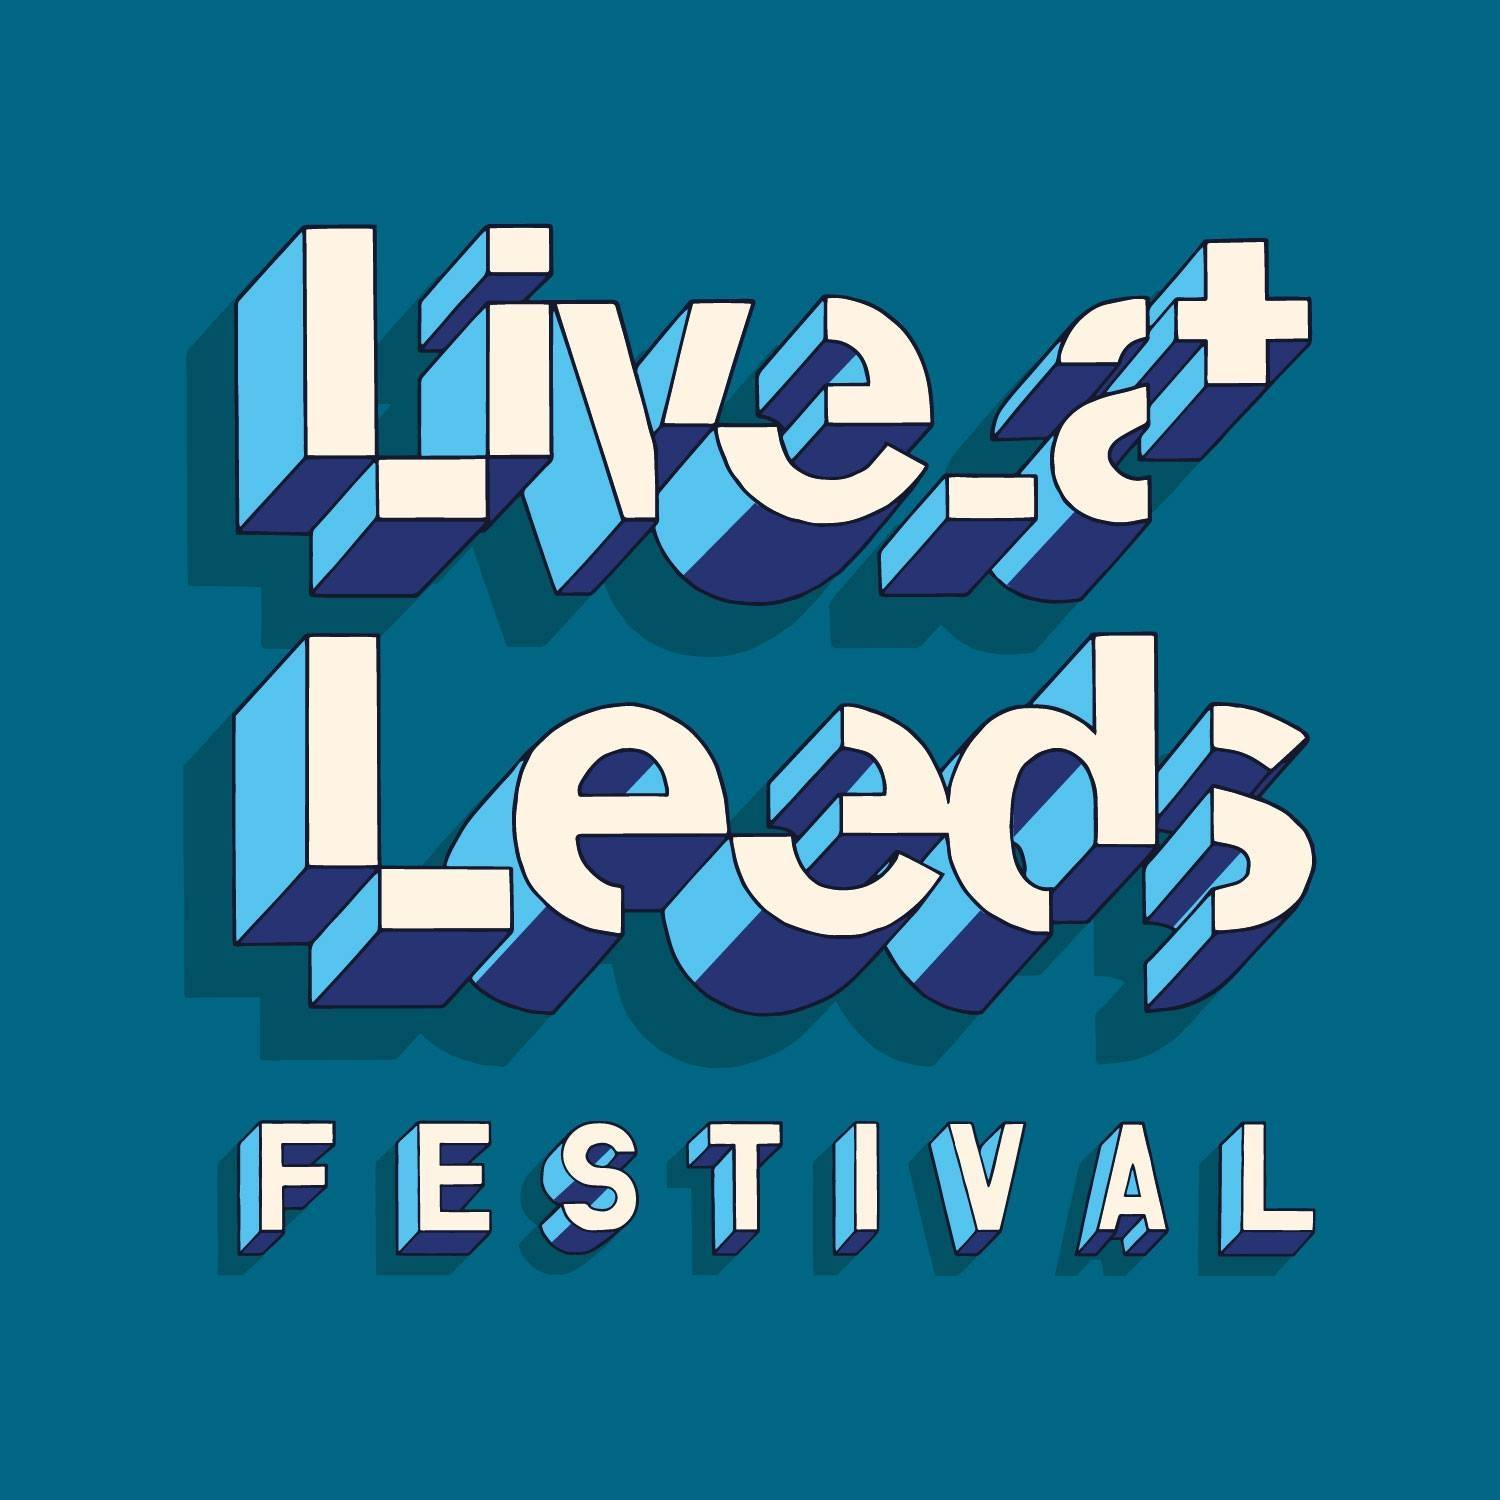 Live At Leeds 2020 Festival Rescheduled To November Due To COVID-19